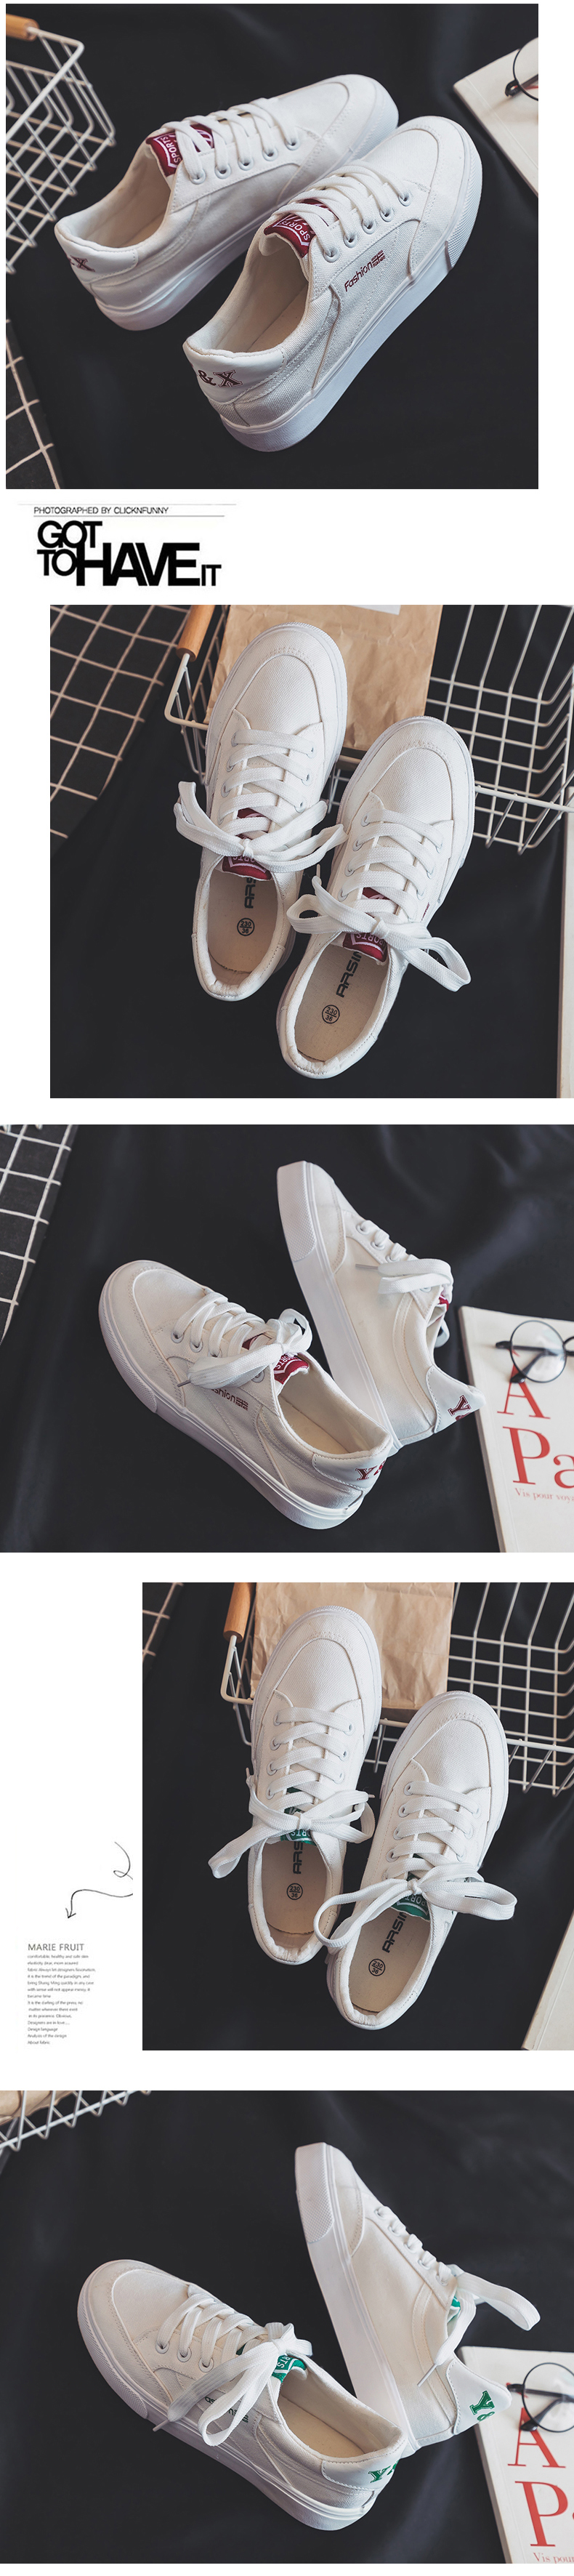 Fashion Style Women Canvas Vulcanized Shoes Simple Design Anti-Skid Sneakers for Female Comfortable Wear Resistant Casual Shoes 13